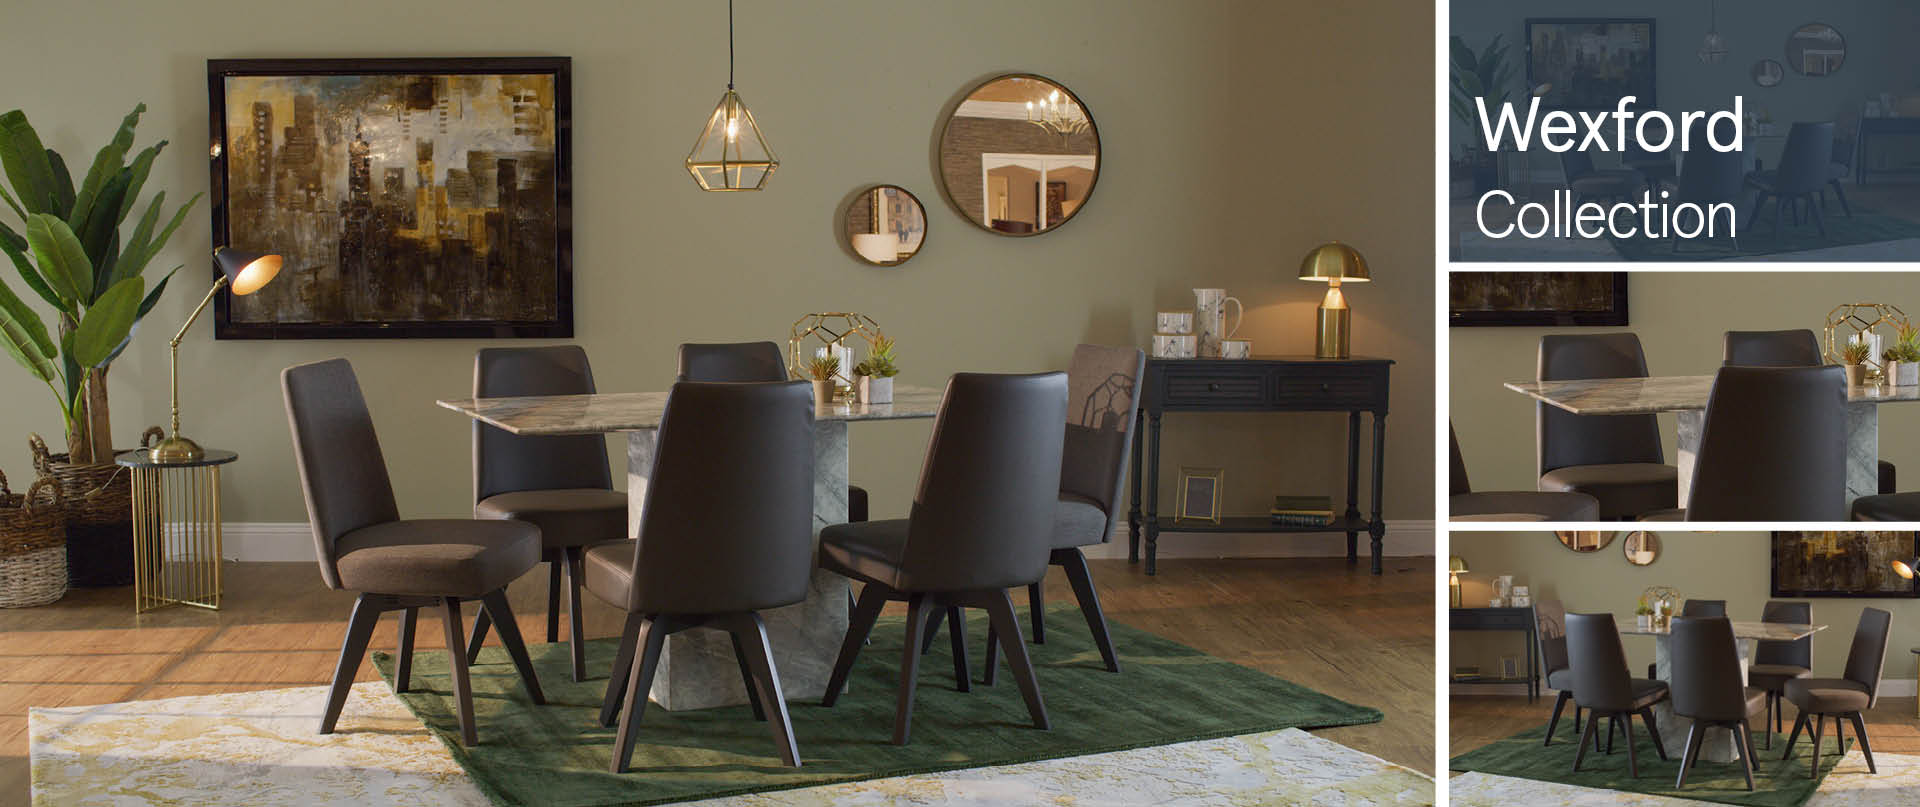 Wexford Dining Furniture Ranges